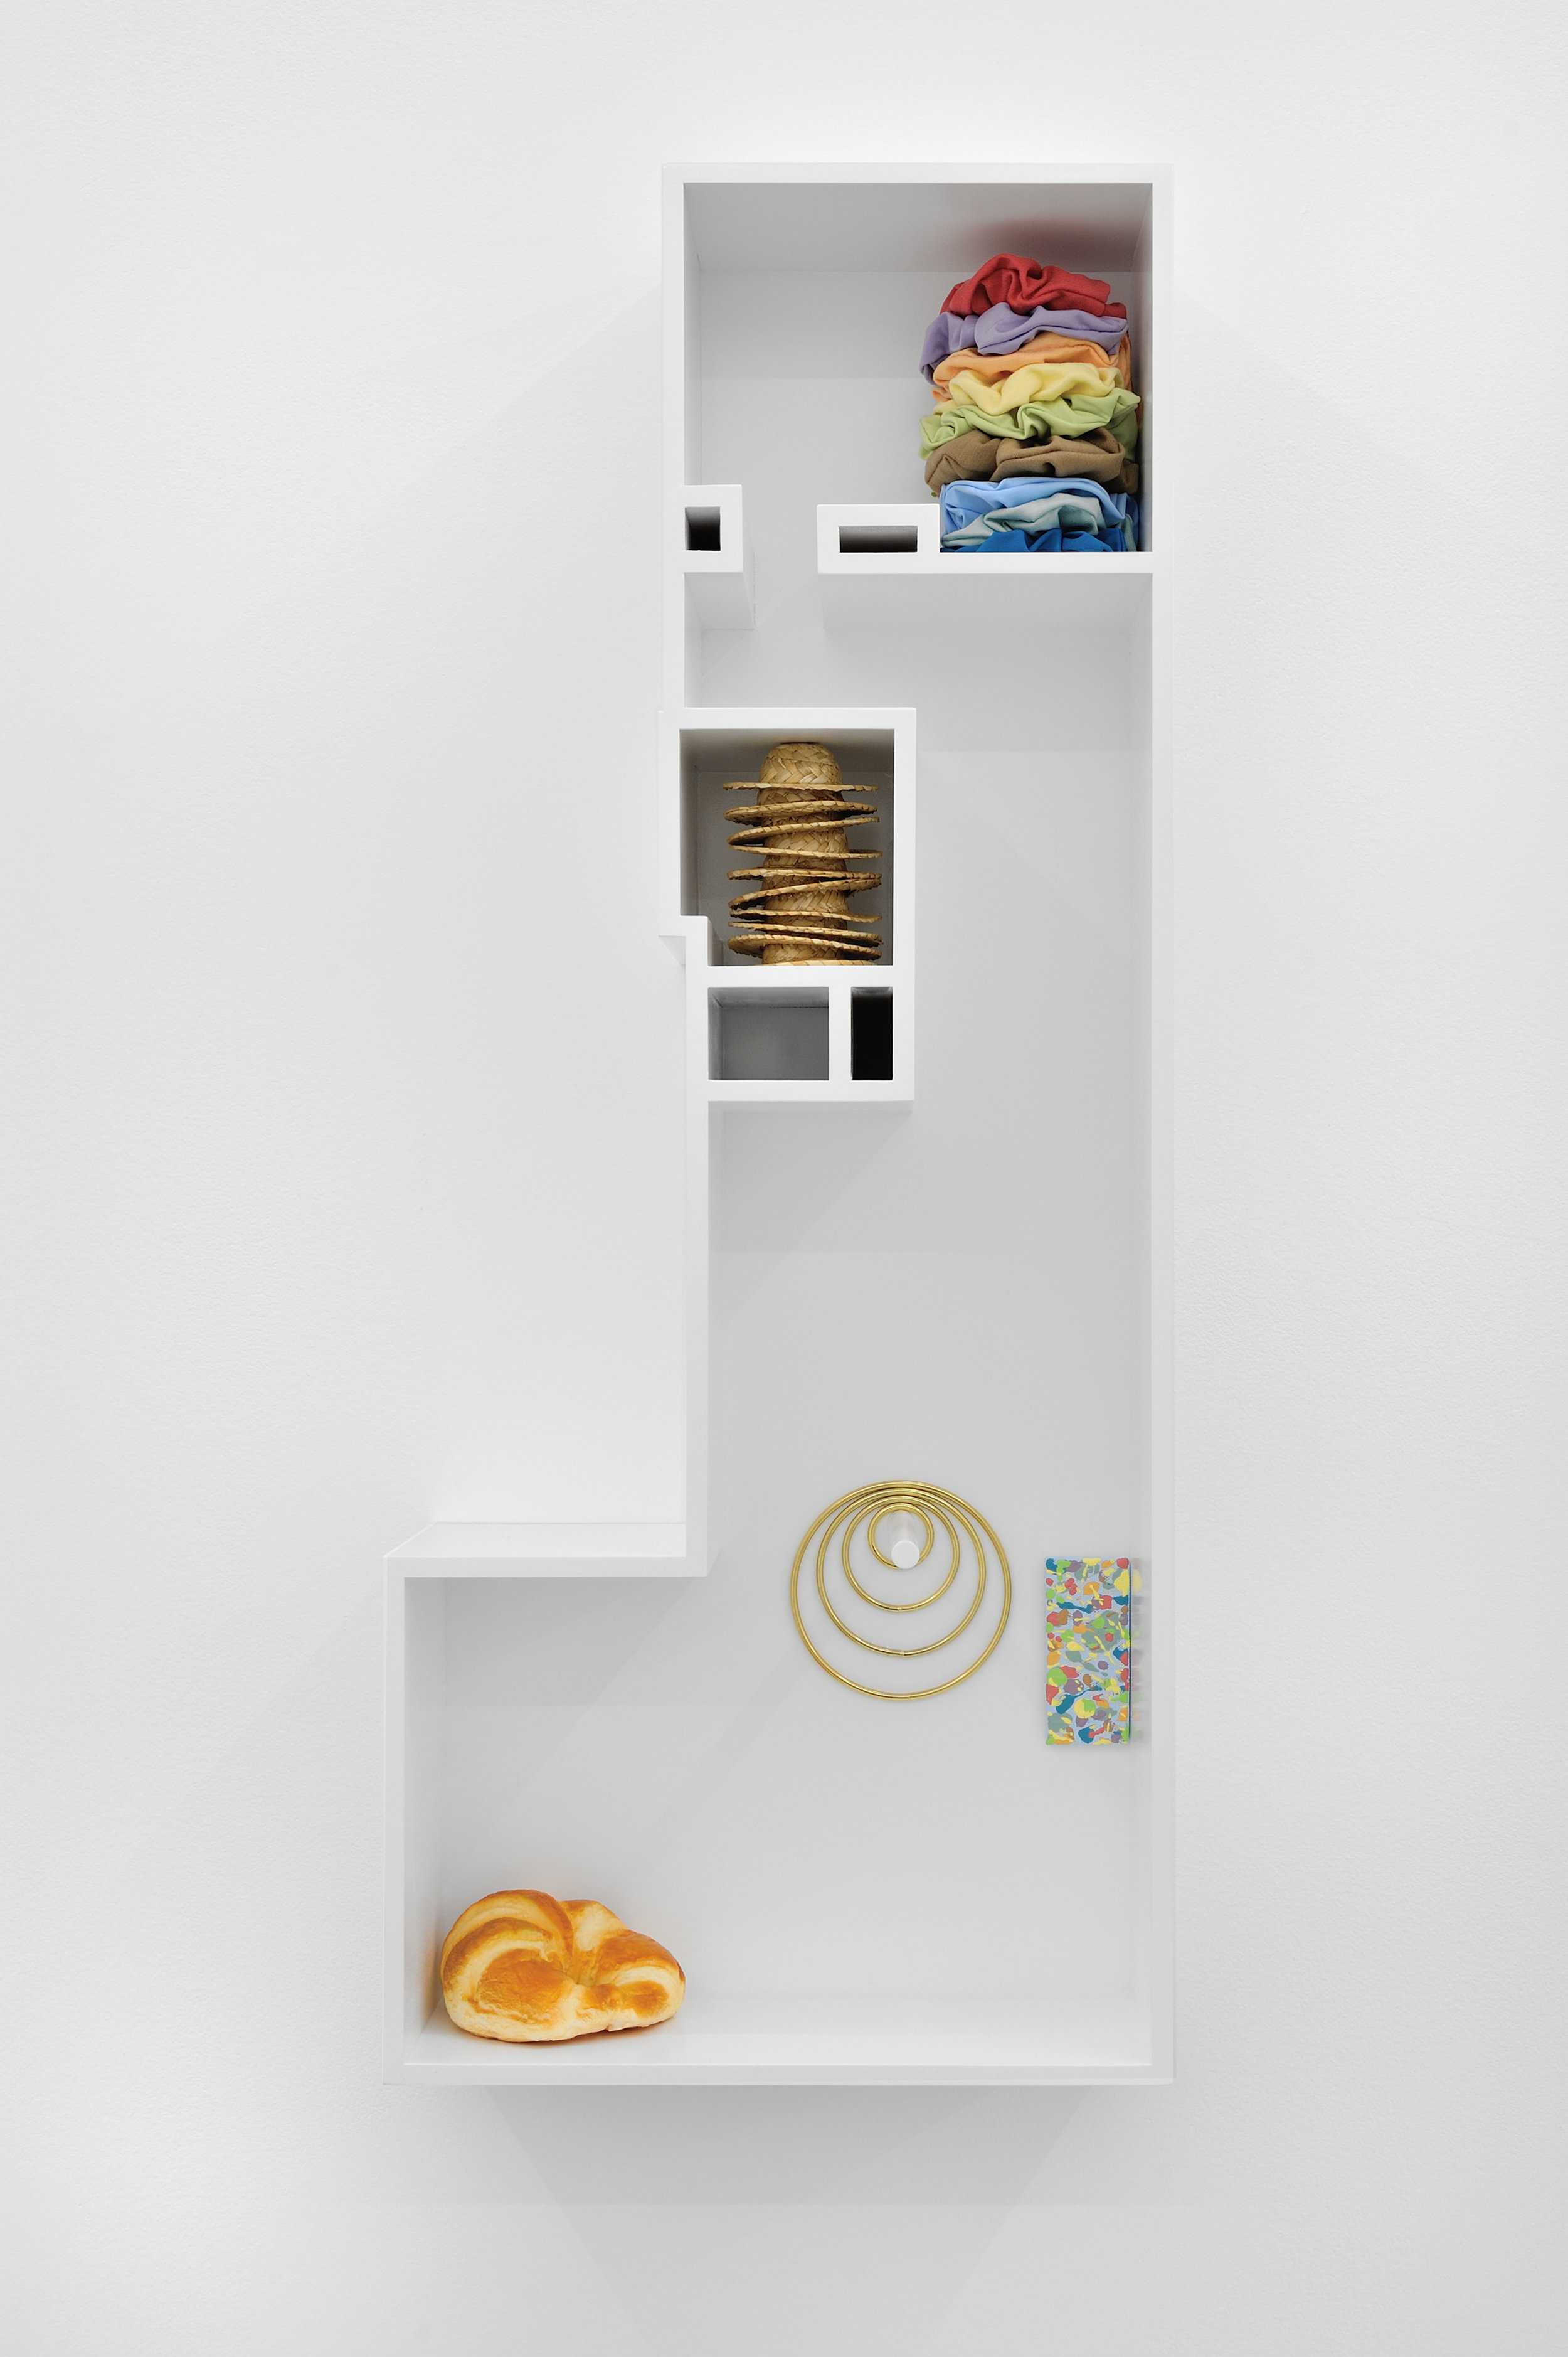 Untitled Model (A STACK OF STRAW HATS), 2015 MDF, poplar, enamel paint, custom scrunchies, a stack of straw hats, brass rings, acrylic on canvas, artificial croissant 86,7 x 35,5 x 16,5 cm - 34 1/8 x 14 x 6 1/2 inches